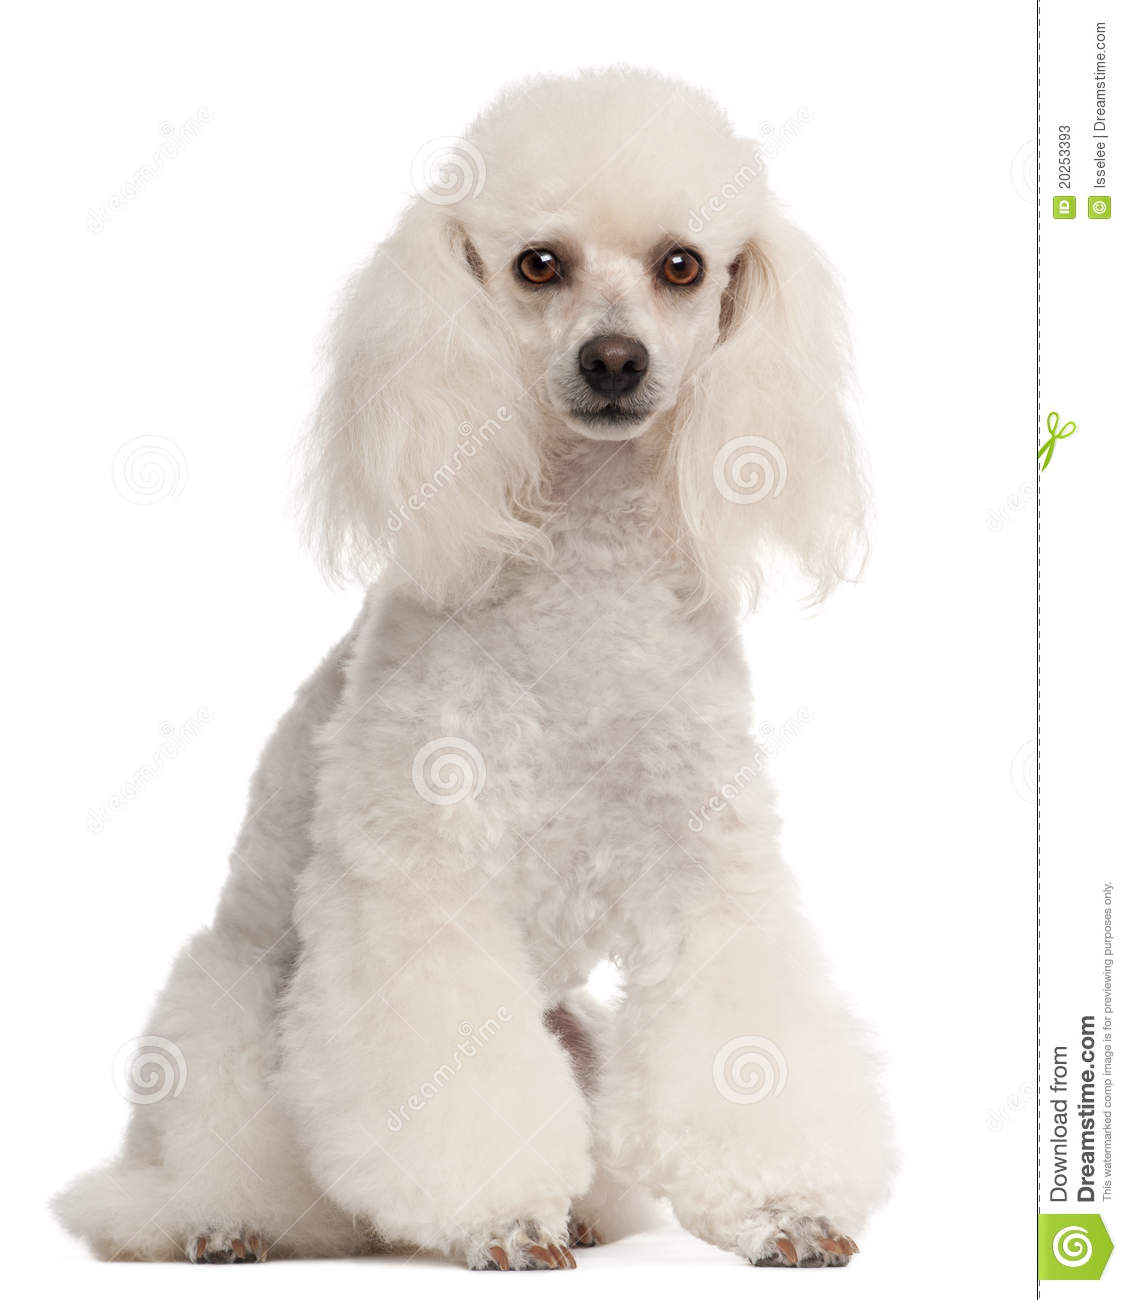 Poodle, 2 Years Old, Sitting Stock Photos - Image: 20253393